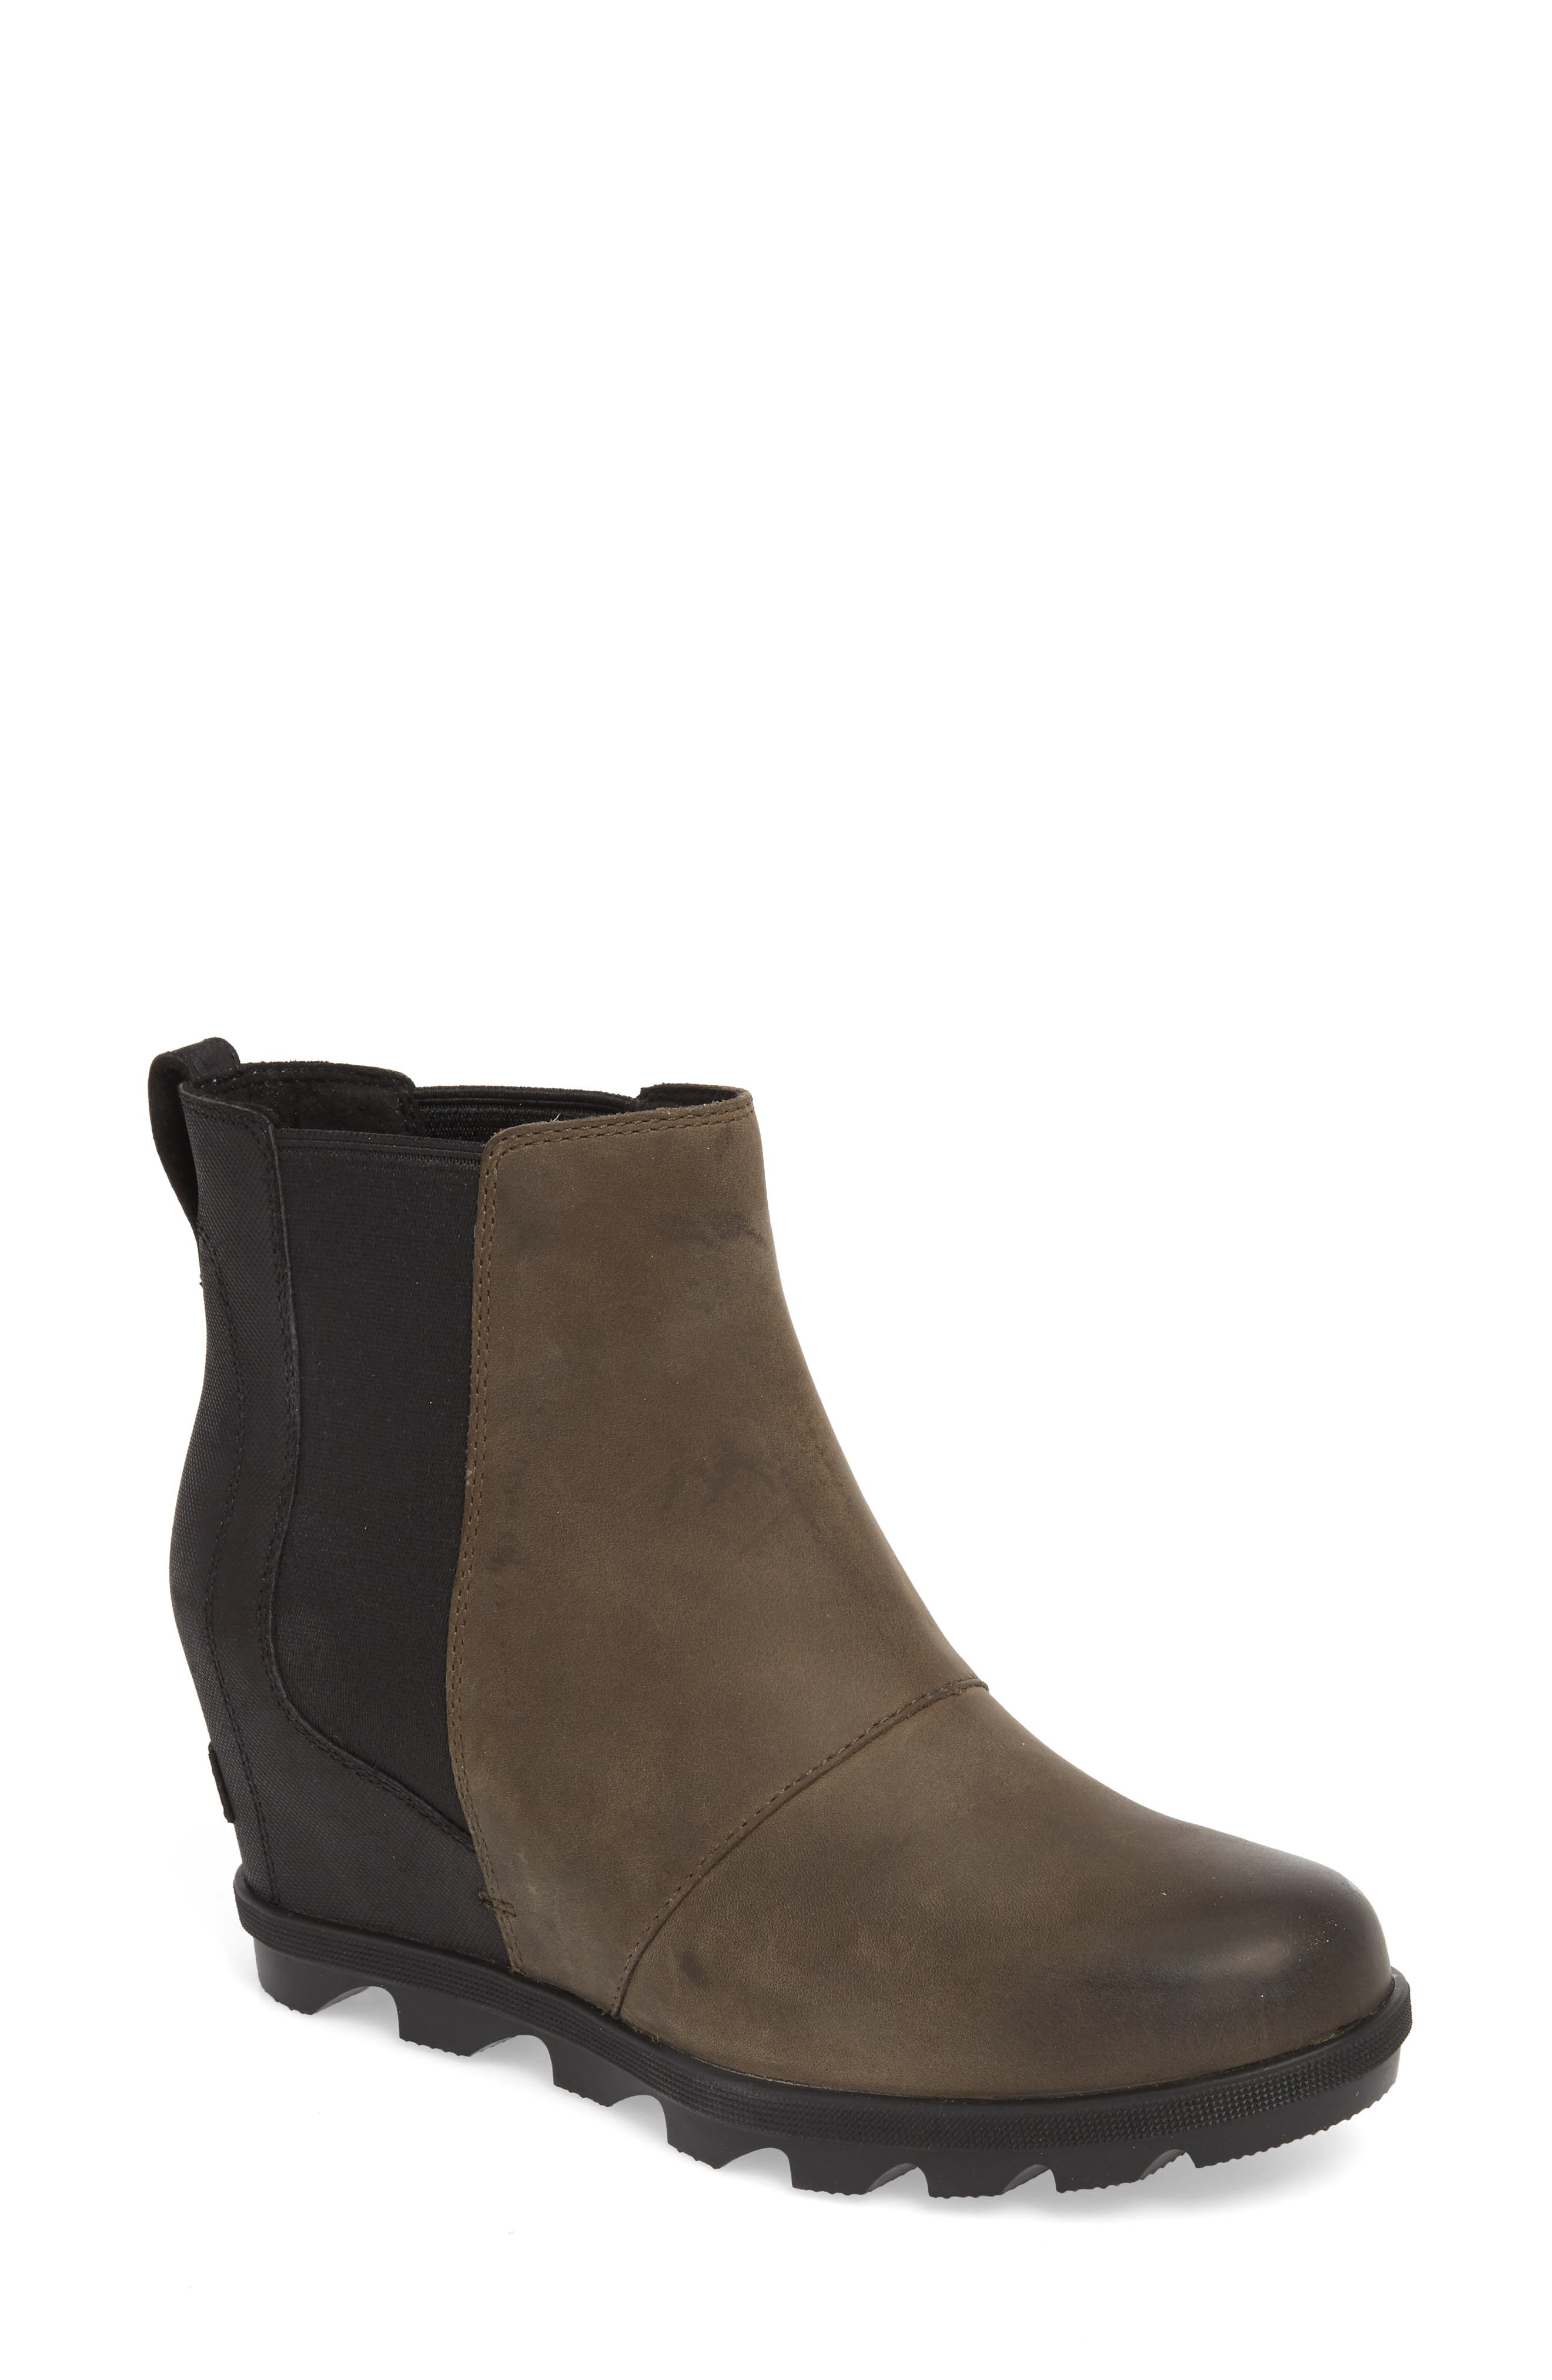 Sorel Joan Wedge Ii Waterproof Chelsea Bootie, Grey